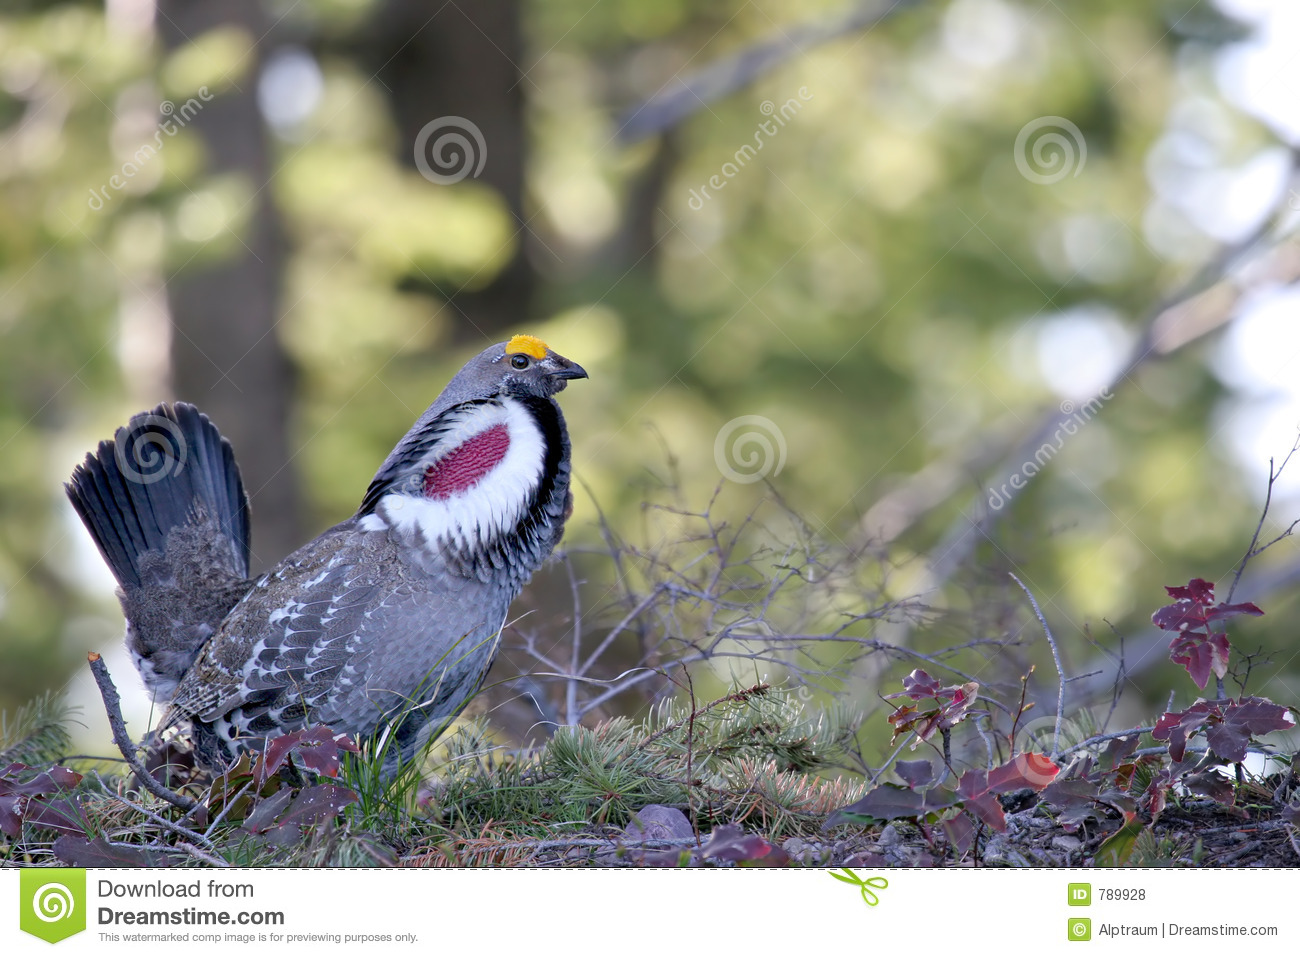 Royalty Free Stock Photos Rocky Mountain Blue Grouse Image789928 besides Rgs taxidermy for sale likewise Tundra together with Tundra further How Terrestrial Animals Survive In Very Cold Climates. on animal image grouse